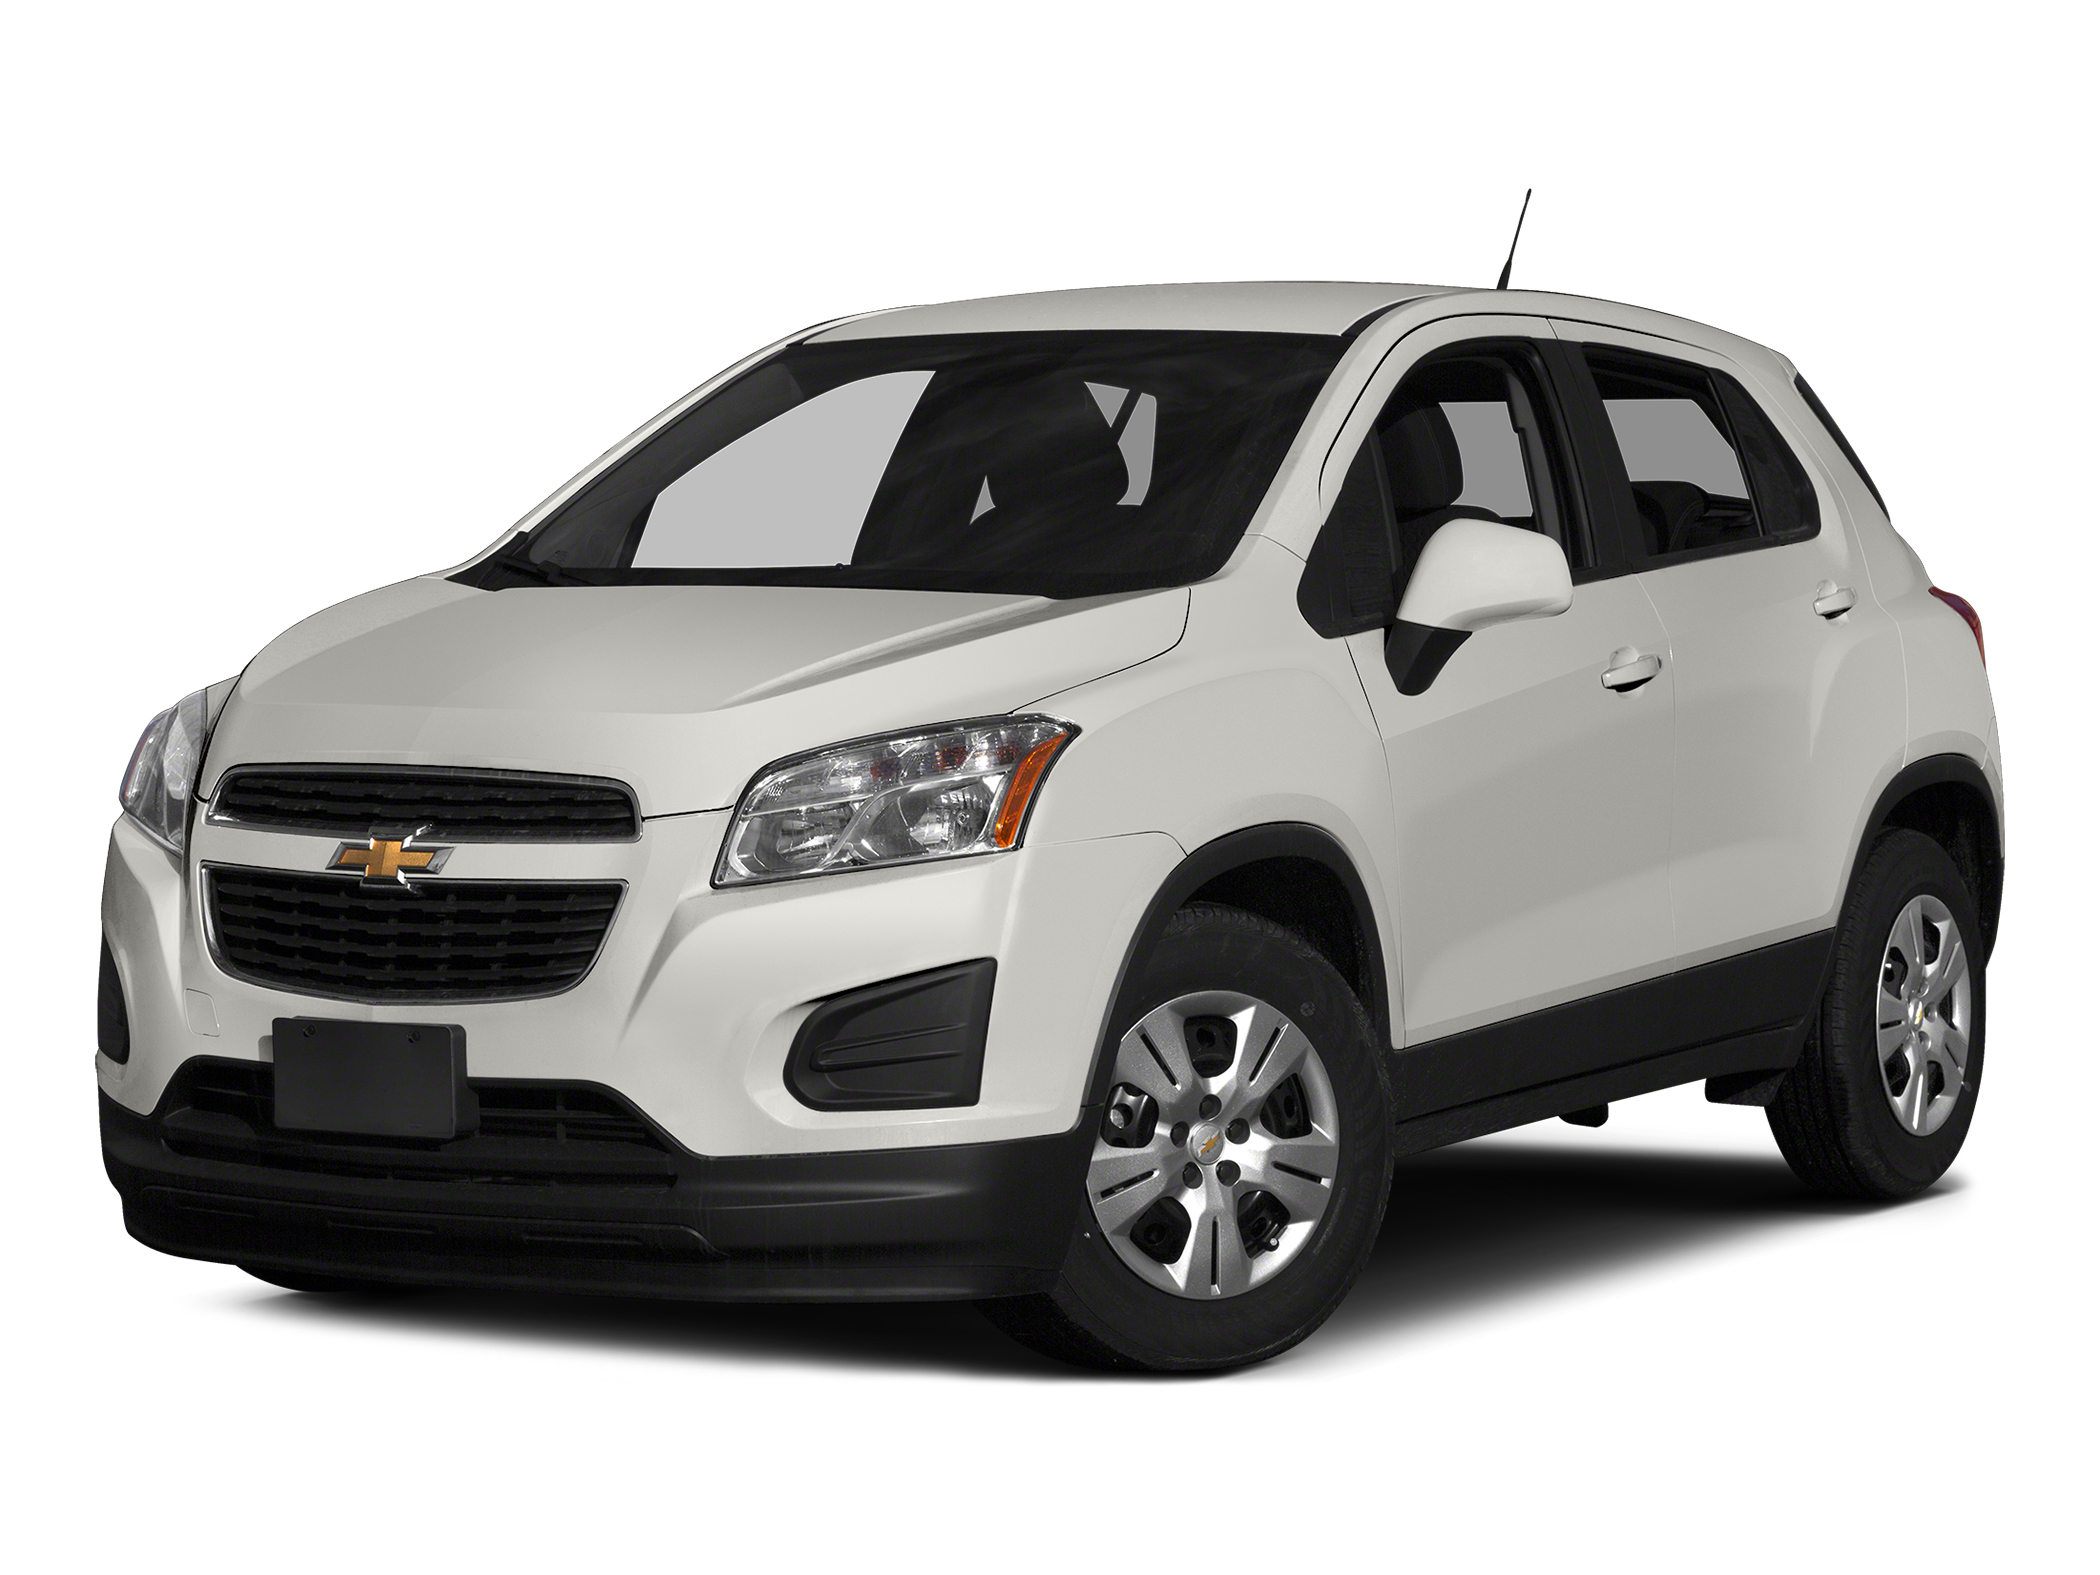 2015 Chevrolet Trax Exterior White (Photo 4 of 8)